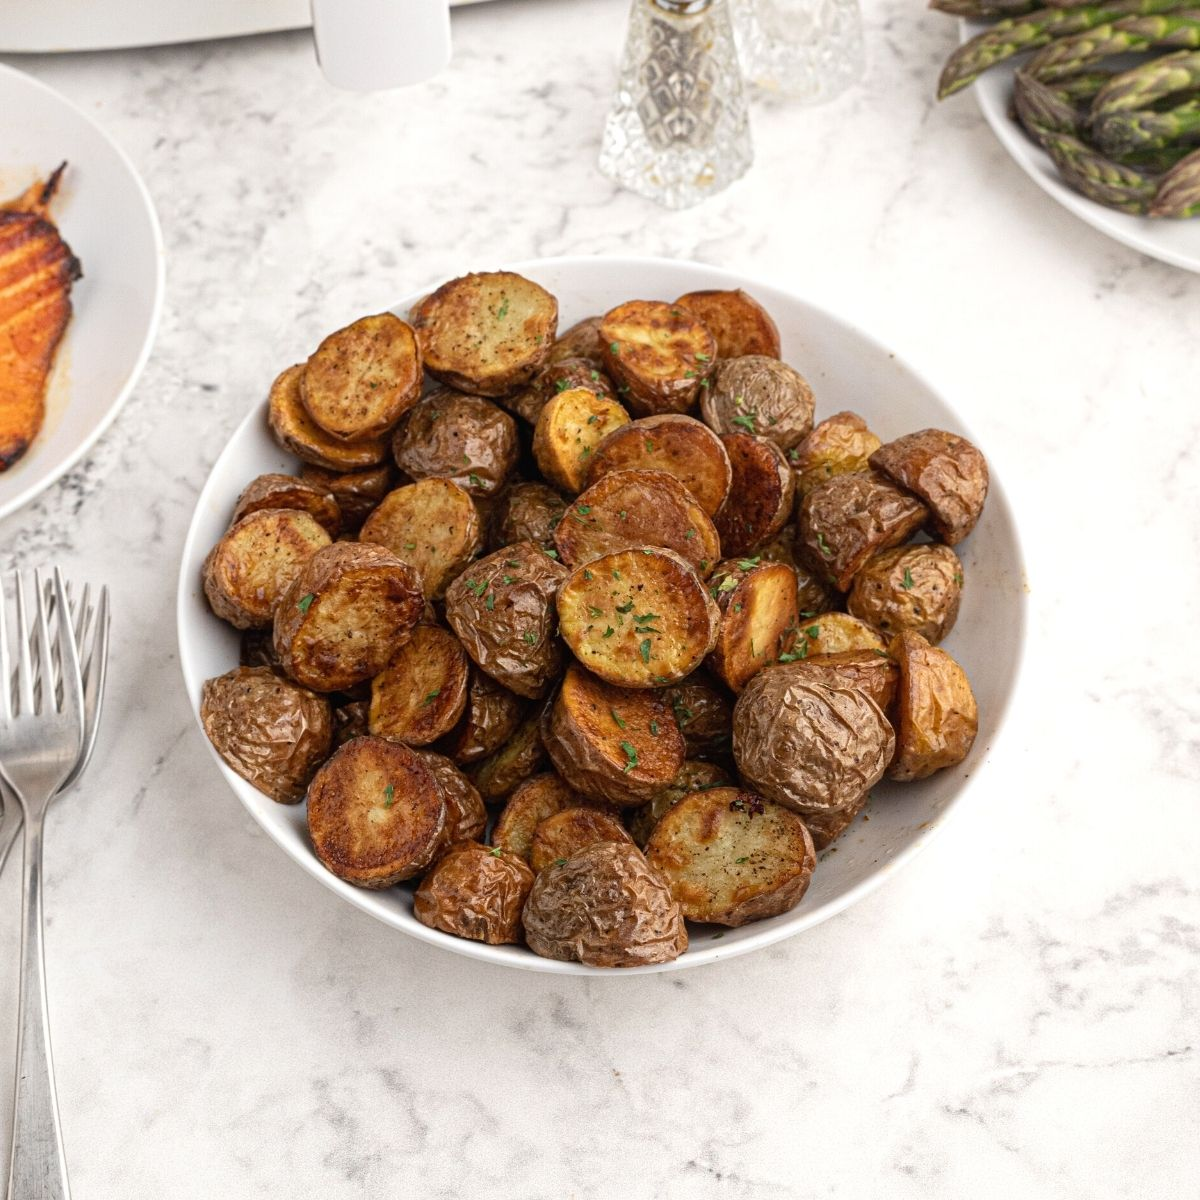 Roasted potatoes in a white bowl. Cooked and cut in half, topped with seasonings.